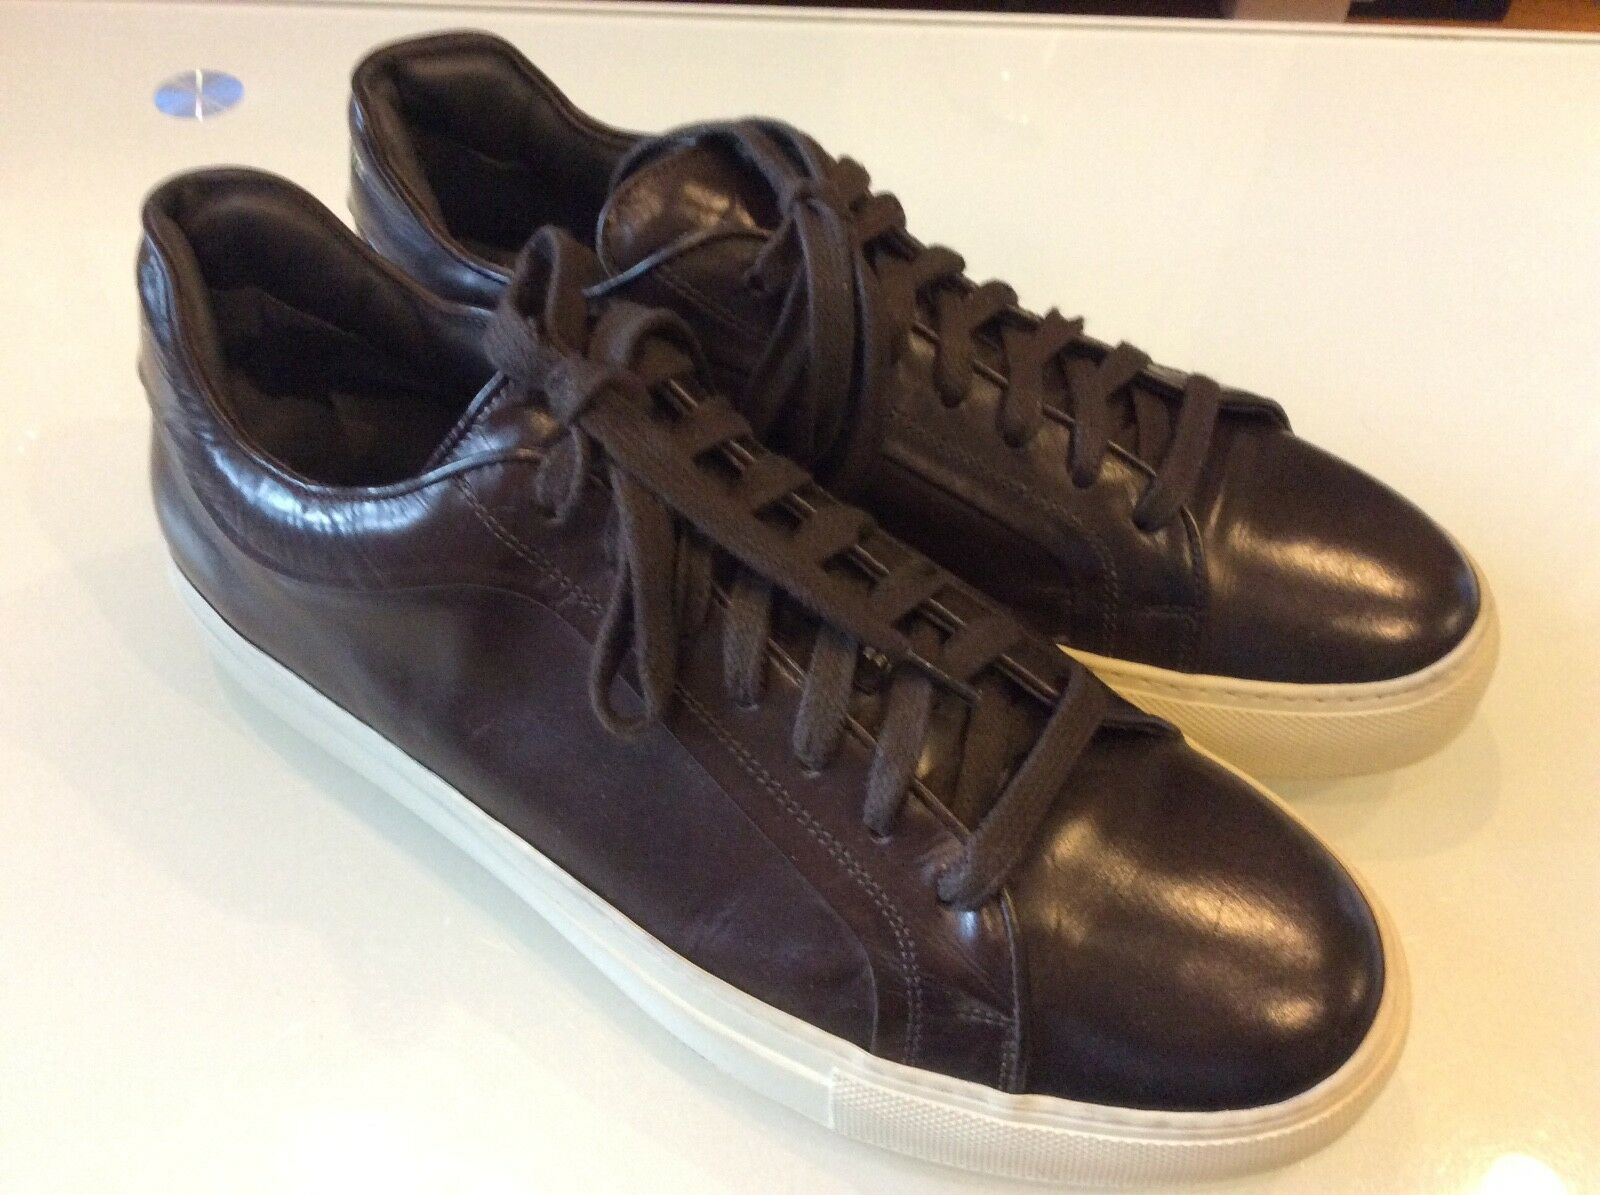 1a998e0f6d5 New York Marshall Mens Brown Leather Sneakers Size 8.5 To Boot ...